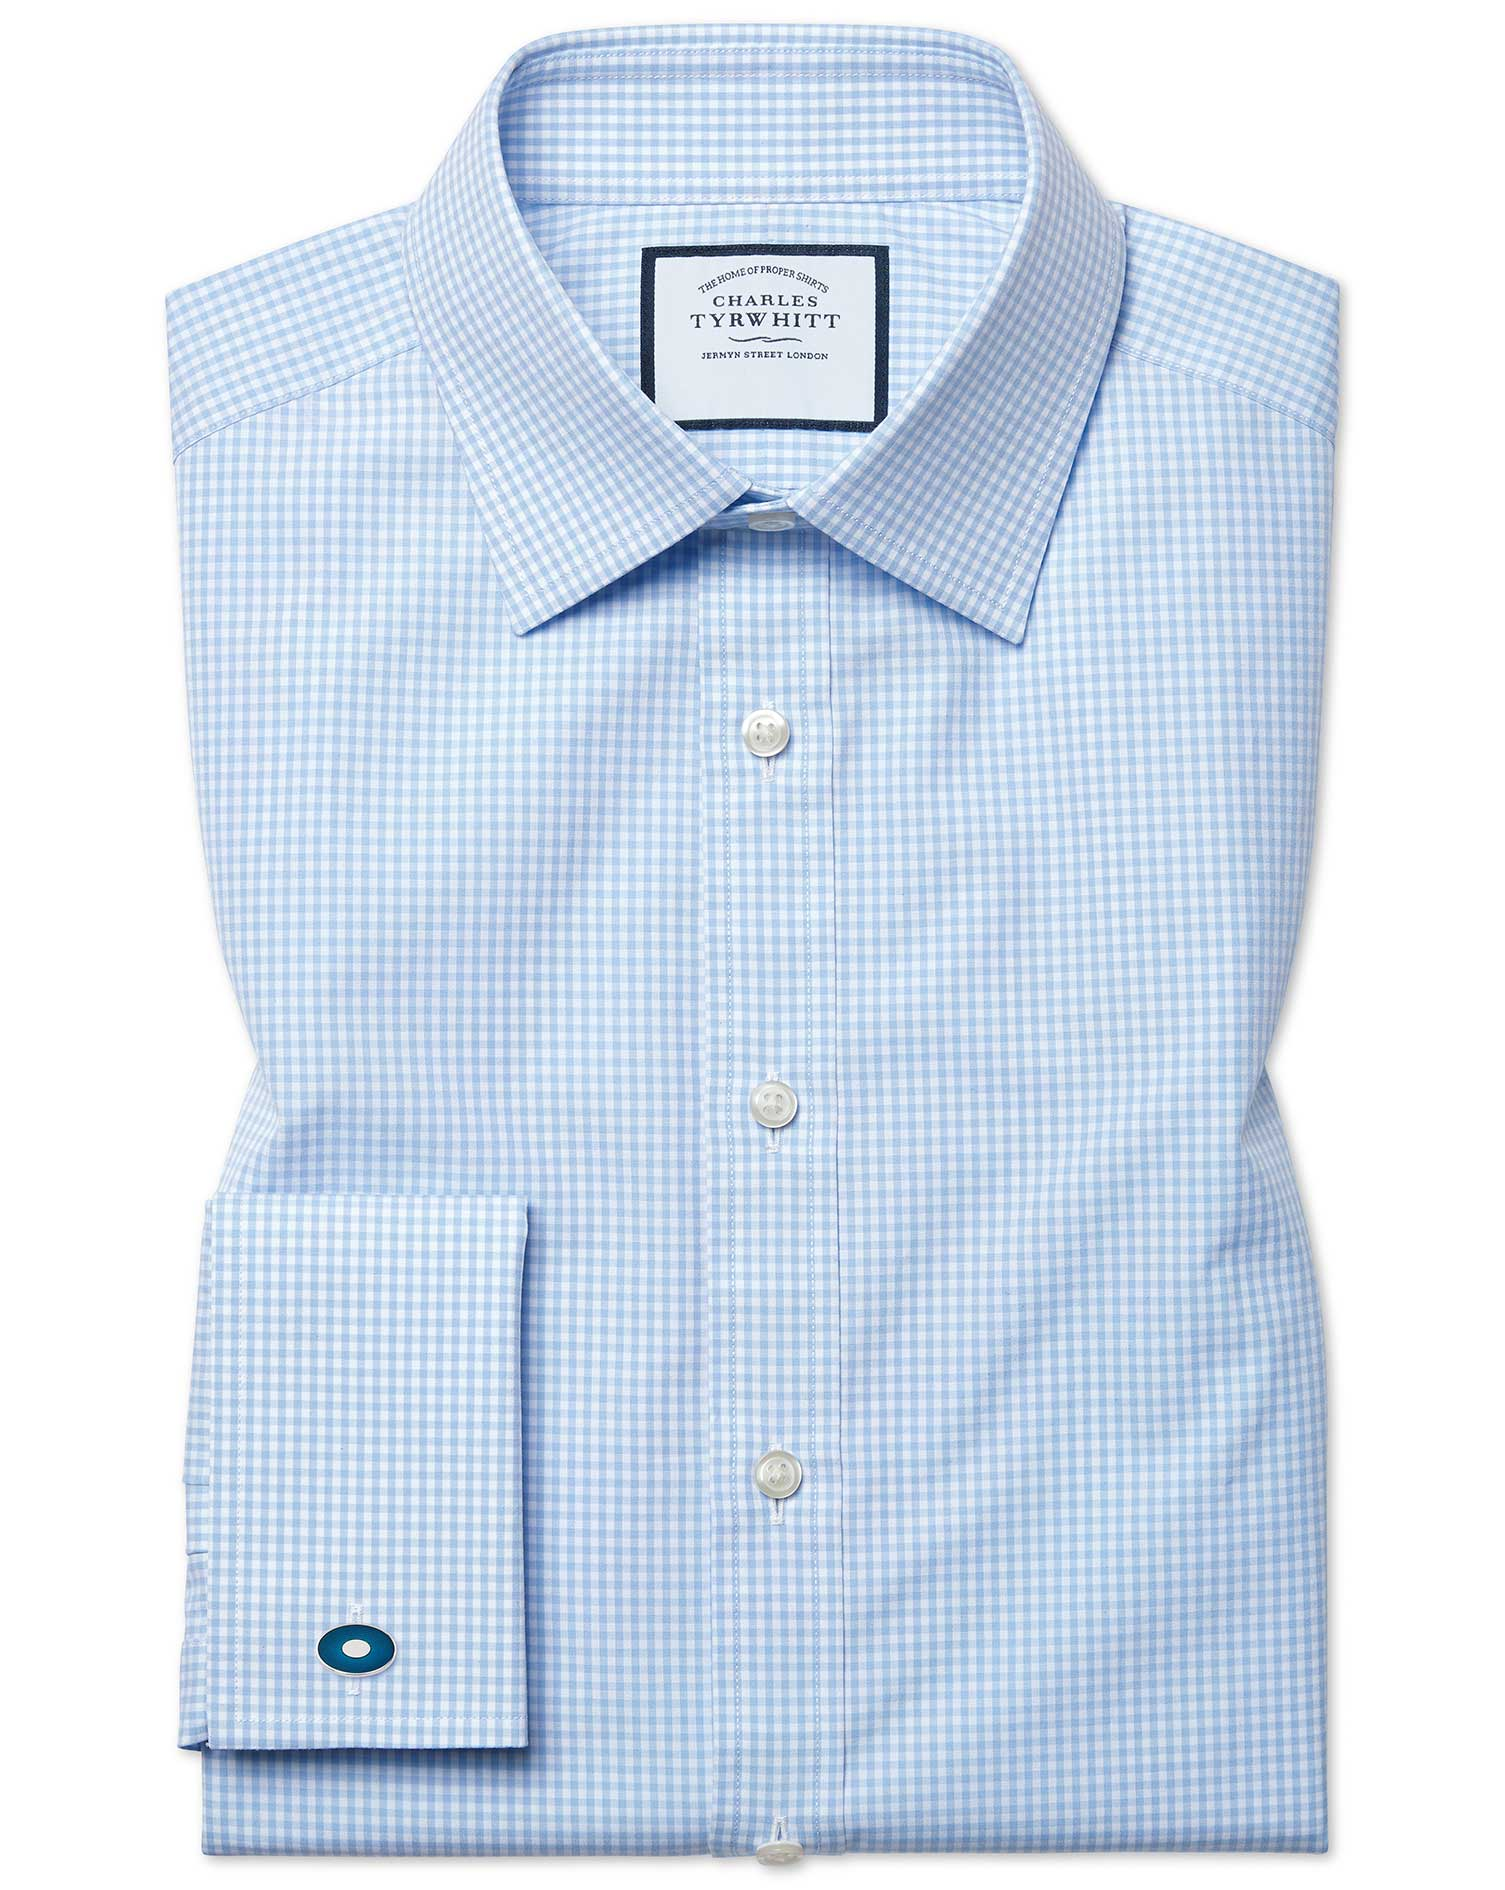 Slim Fit Small Gingham Sky Blue Cotton Formal Shirt Double Cuff Size 16.5/35 by Charles Tyrwhitt